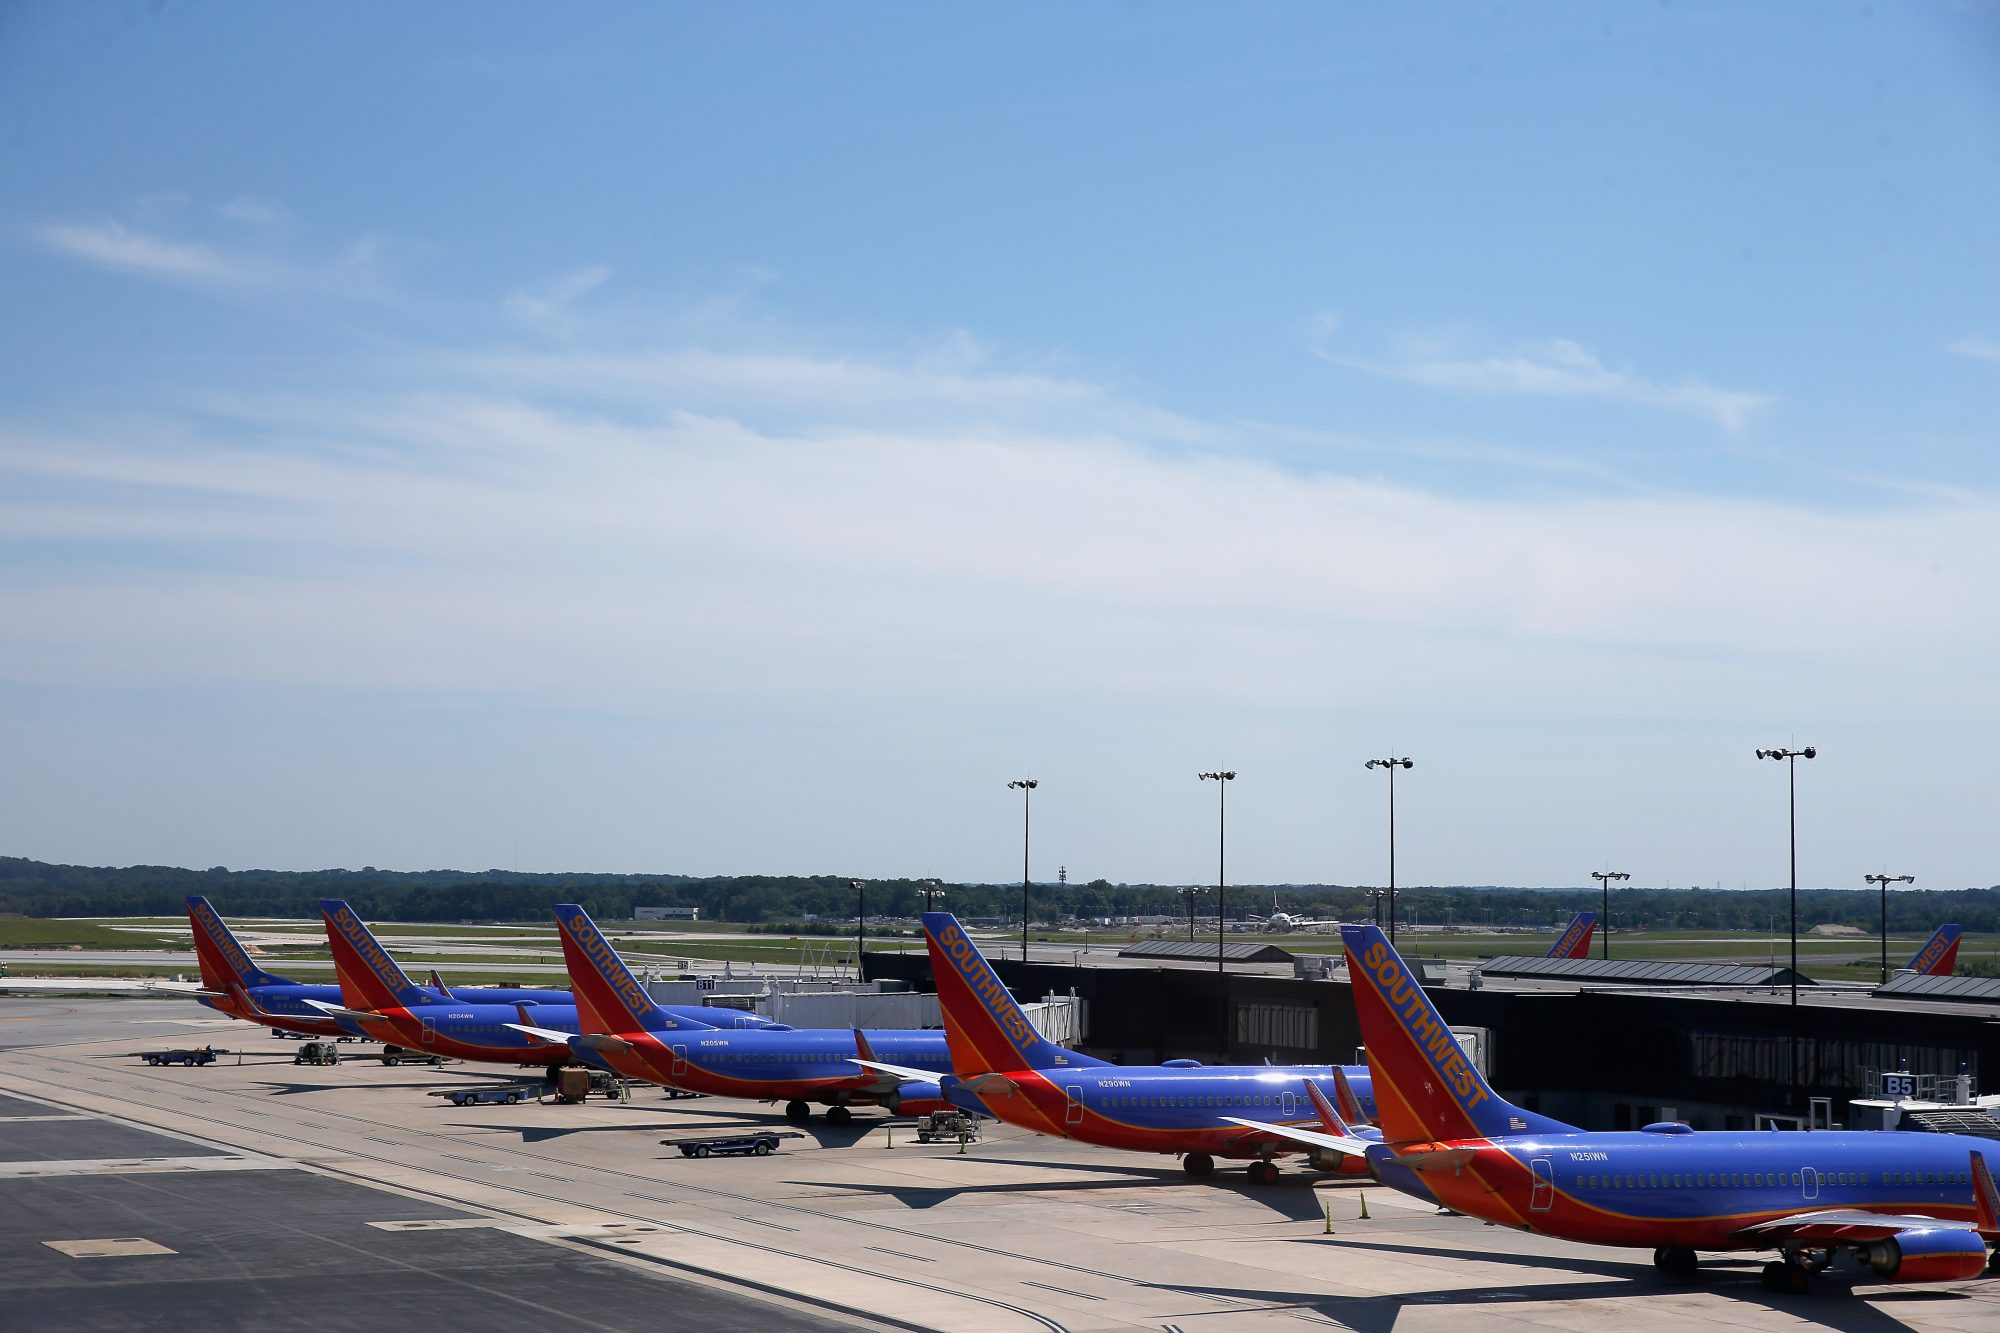 Flight Tracking Issues Delays Flights In DC Area